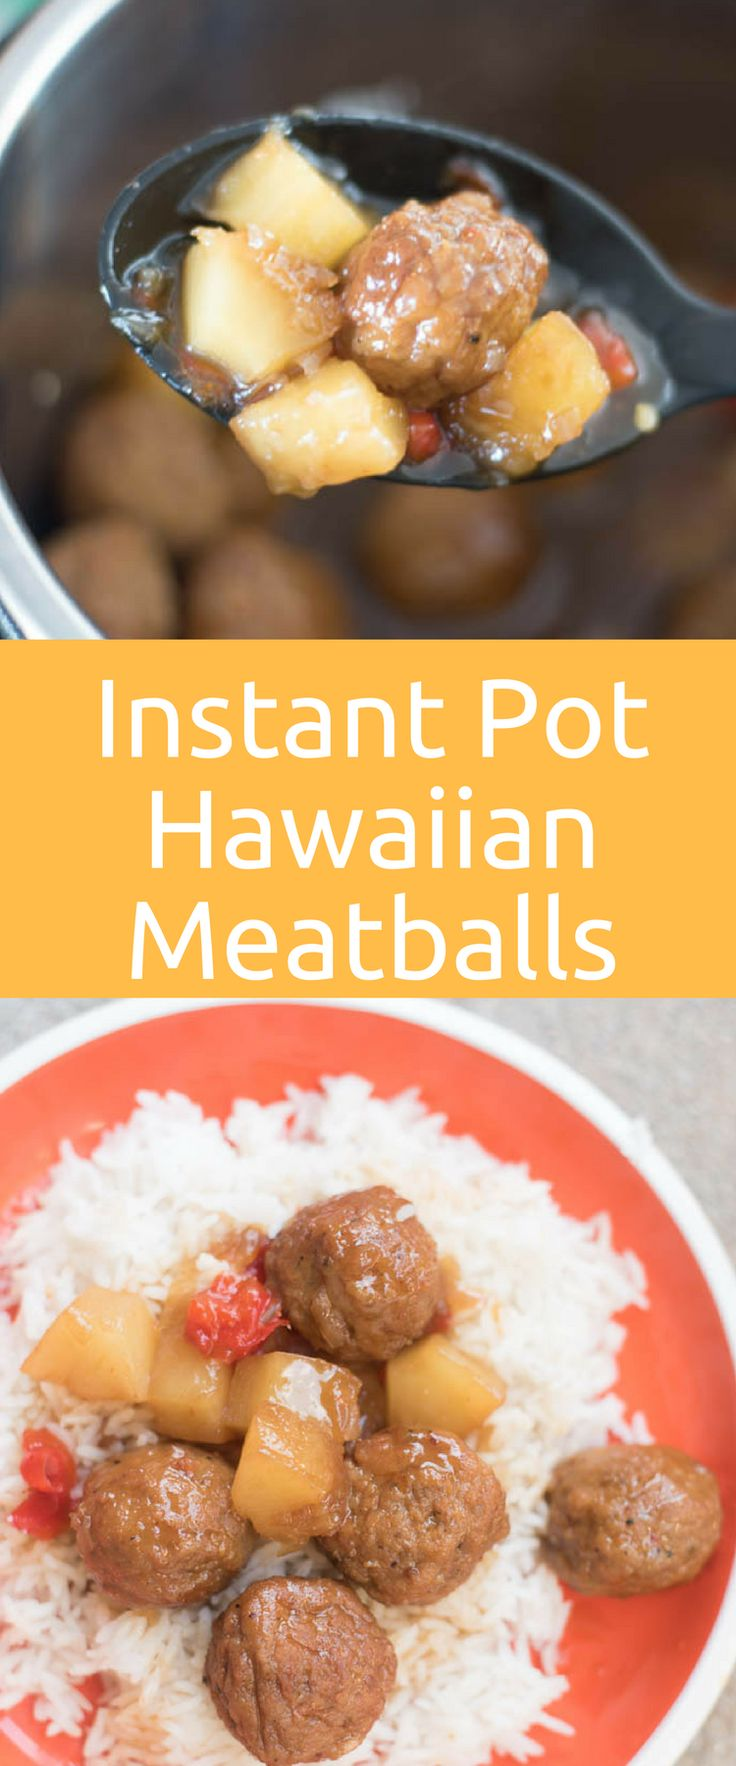 how to cook meatballs in an instant pot